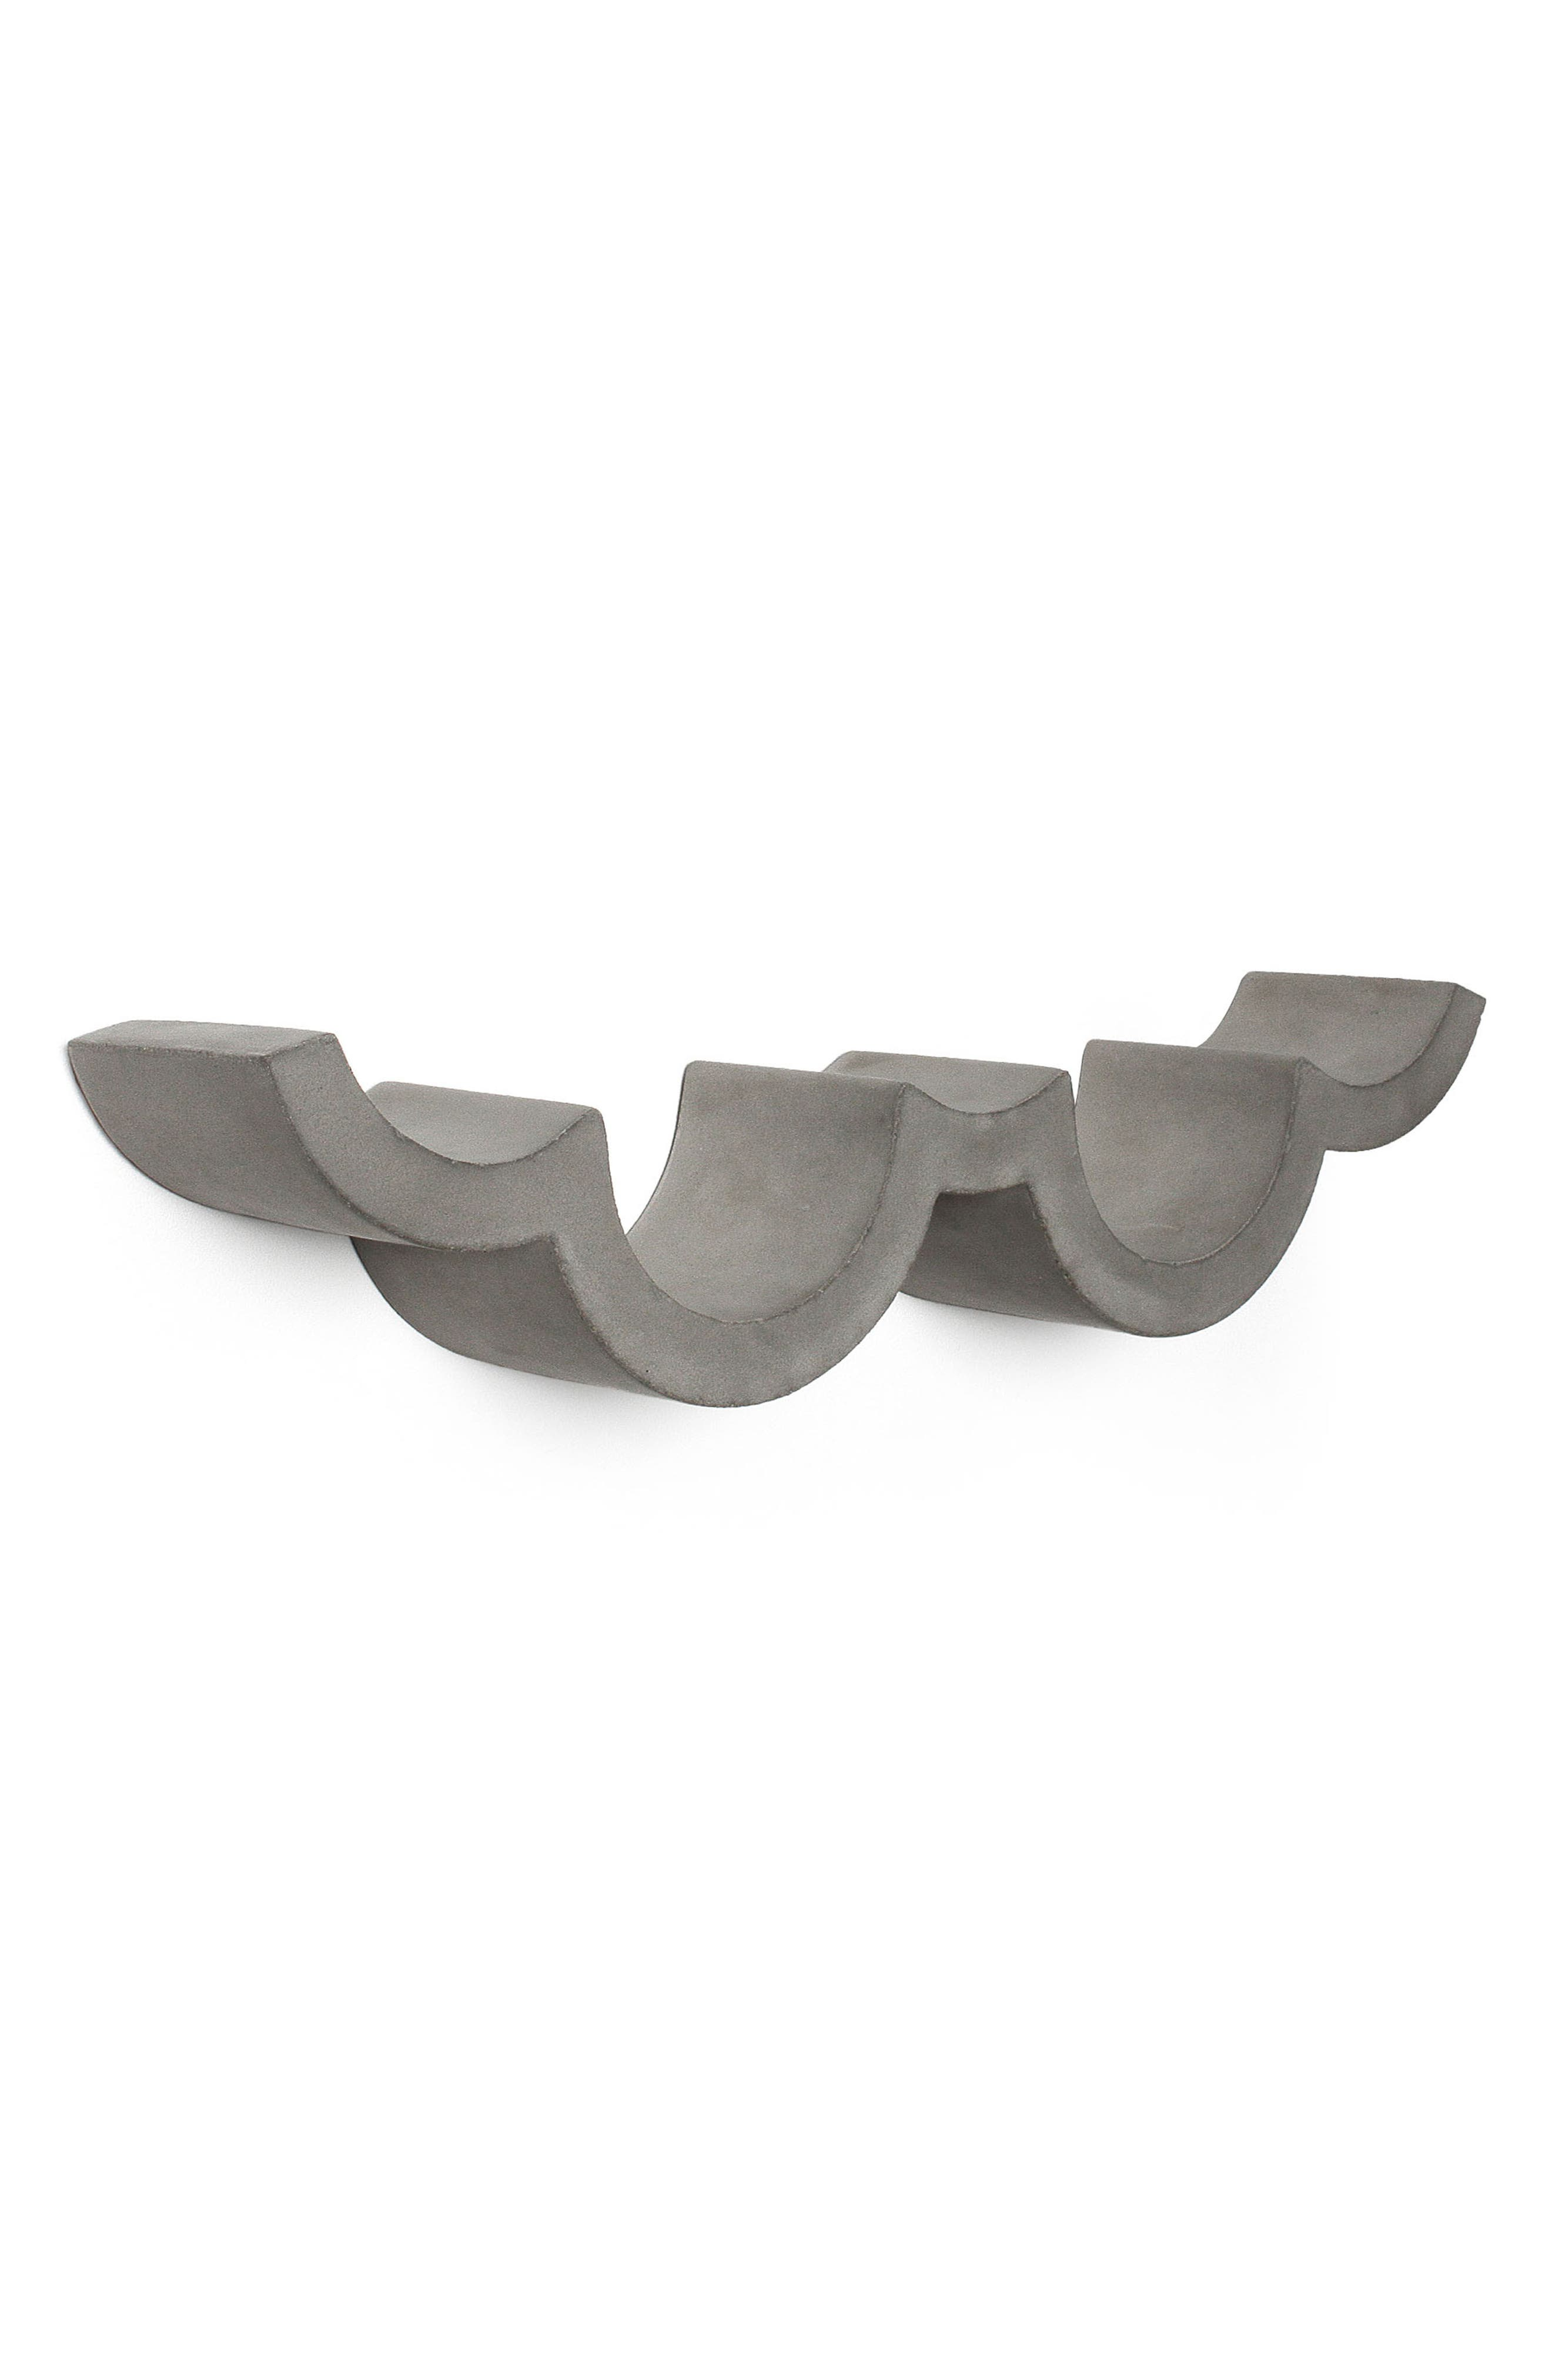 Lyon Béton Small Cloud Toilet Paper Holder,                             Alternate thumbnail 2, color,                             CEMENT